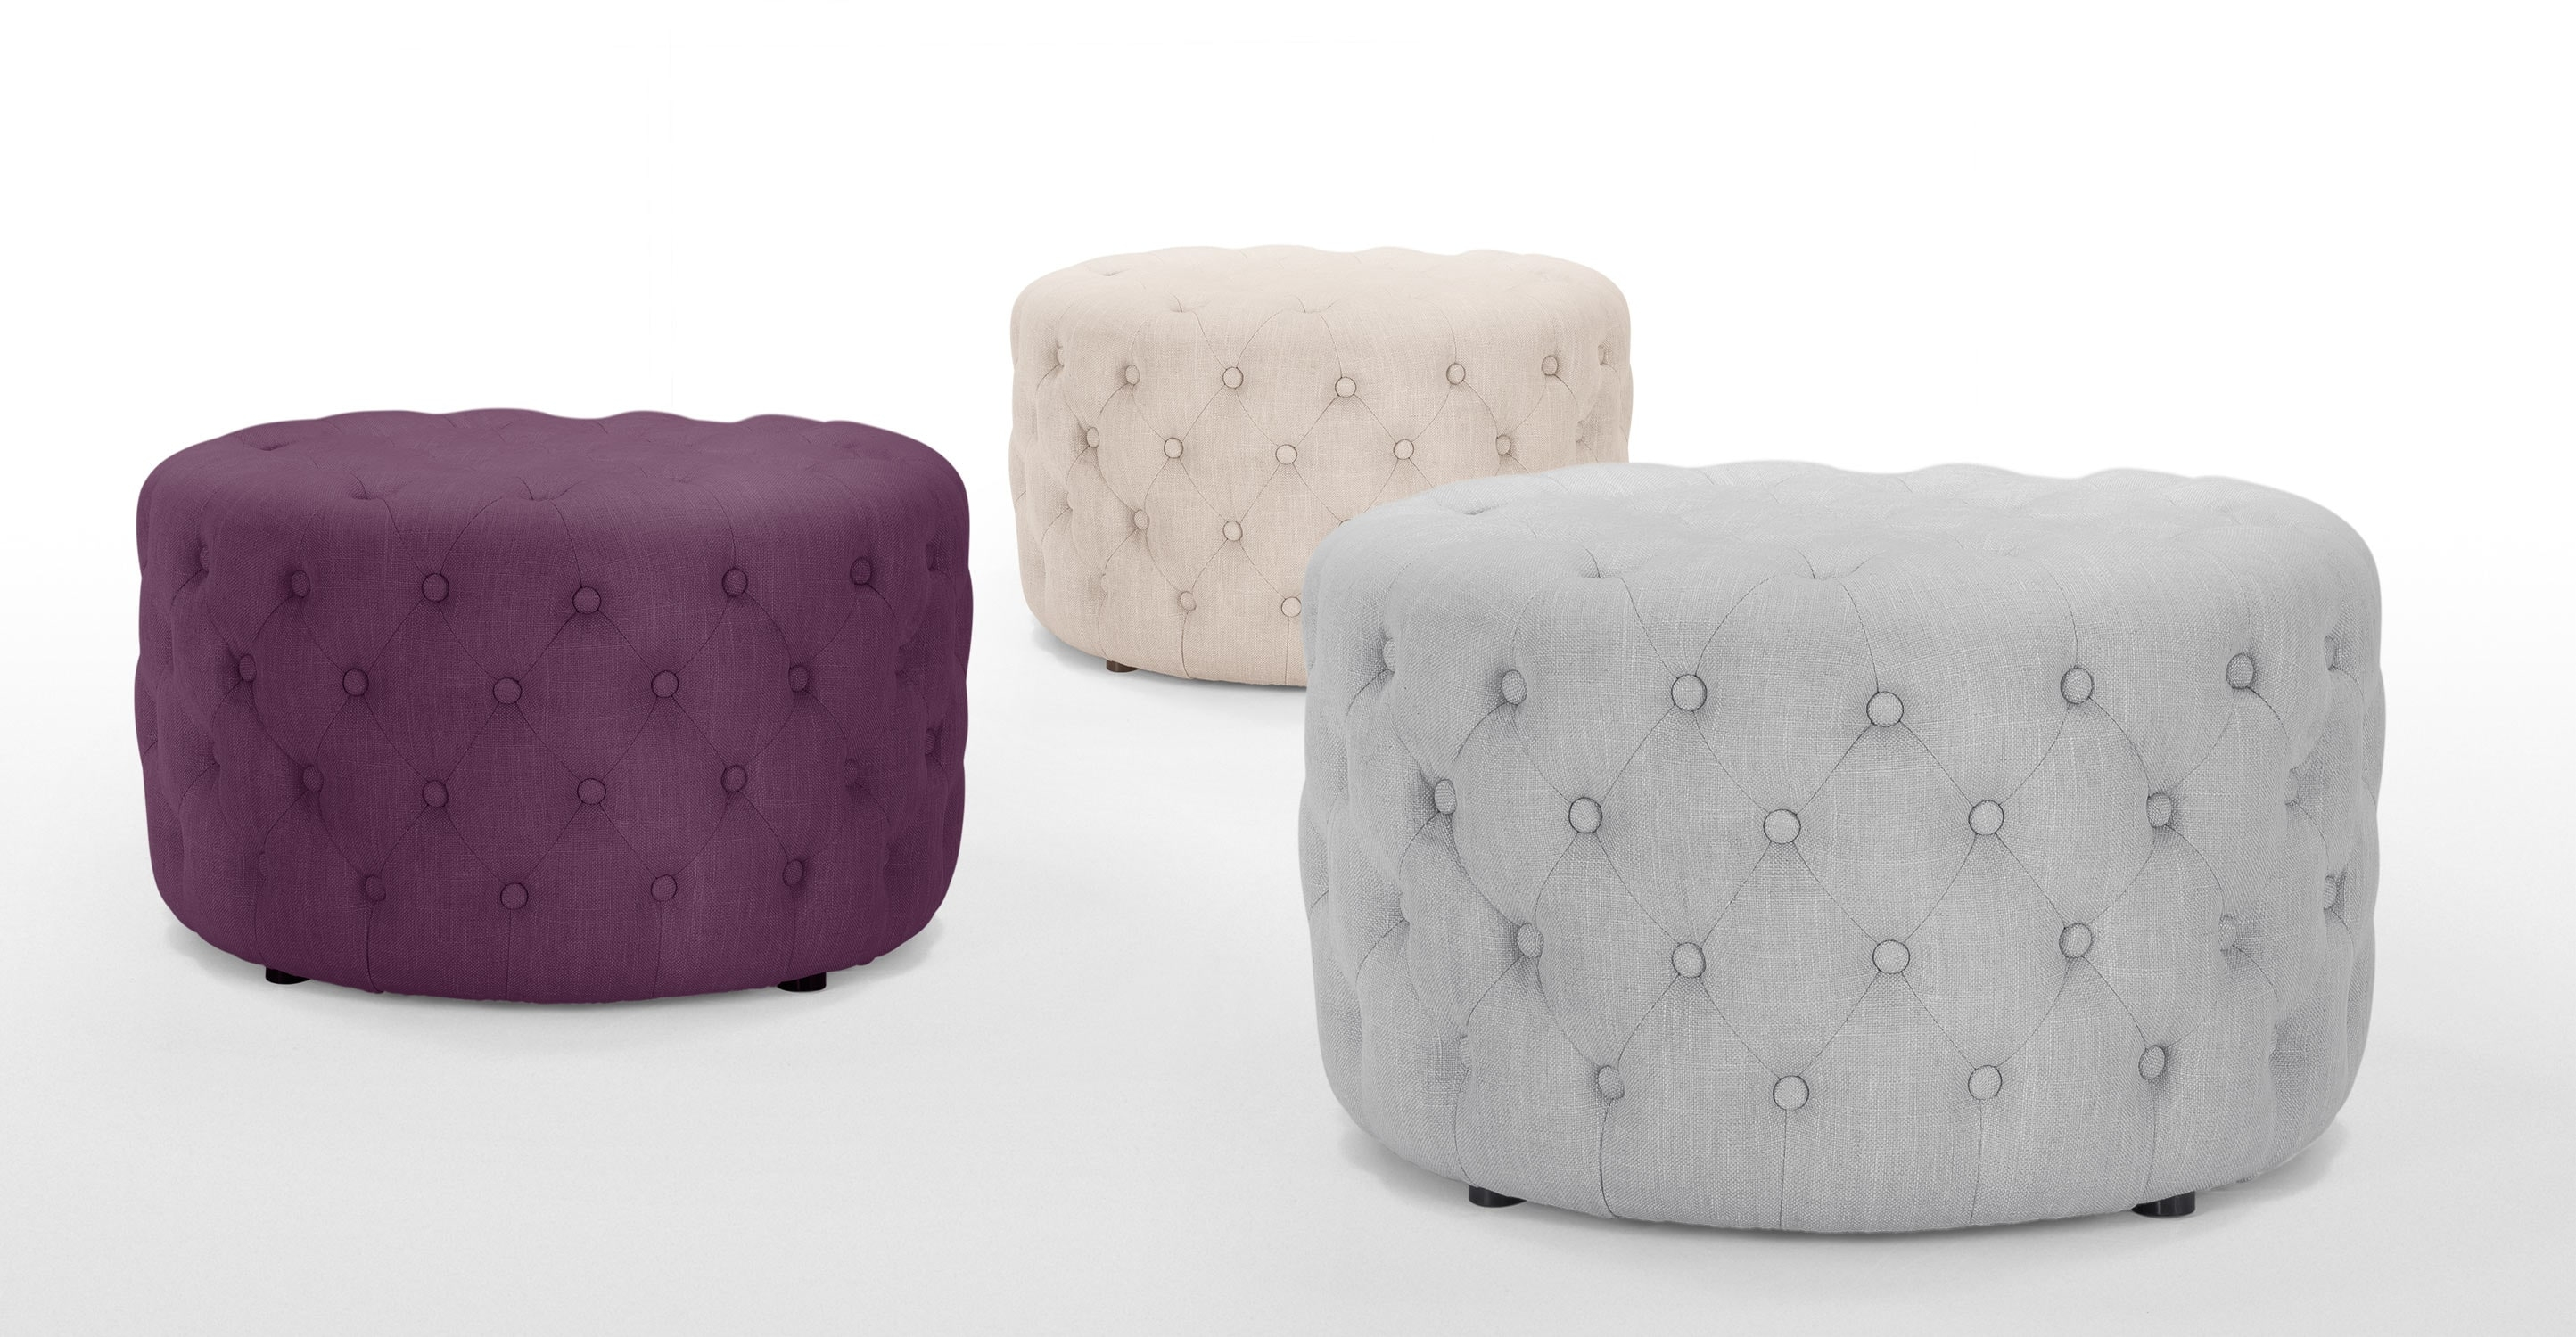 Blakes Small Round Purple Ottoman Made Intended For Small Footstools And Pouffes (Image 1 of 15)